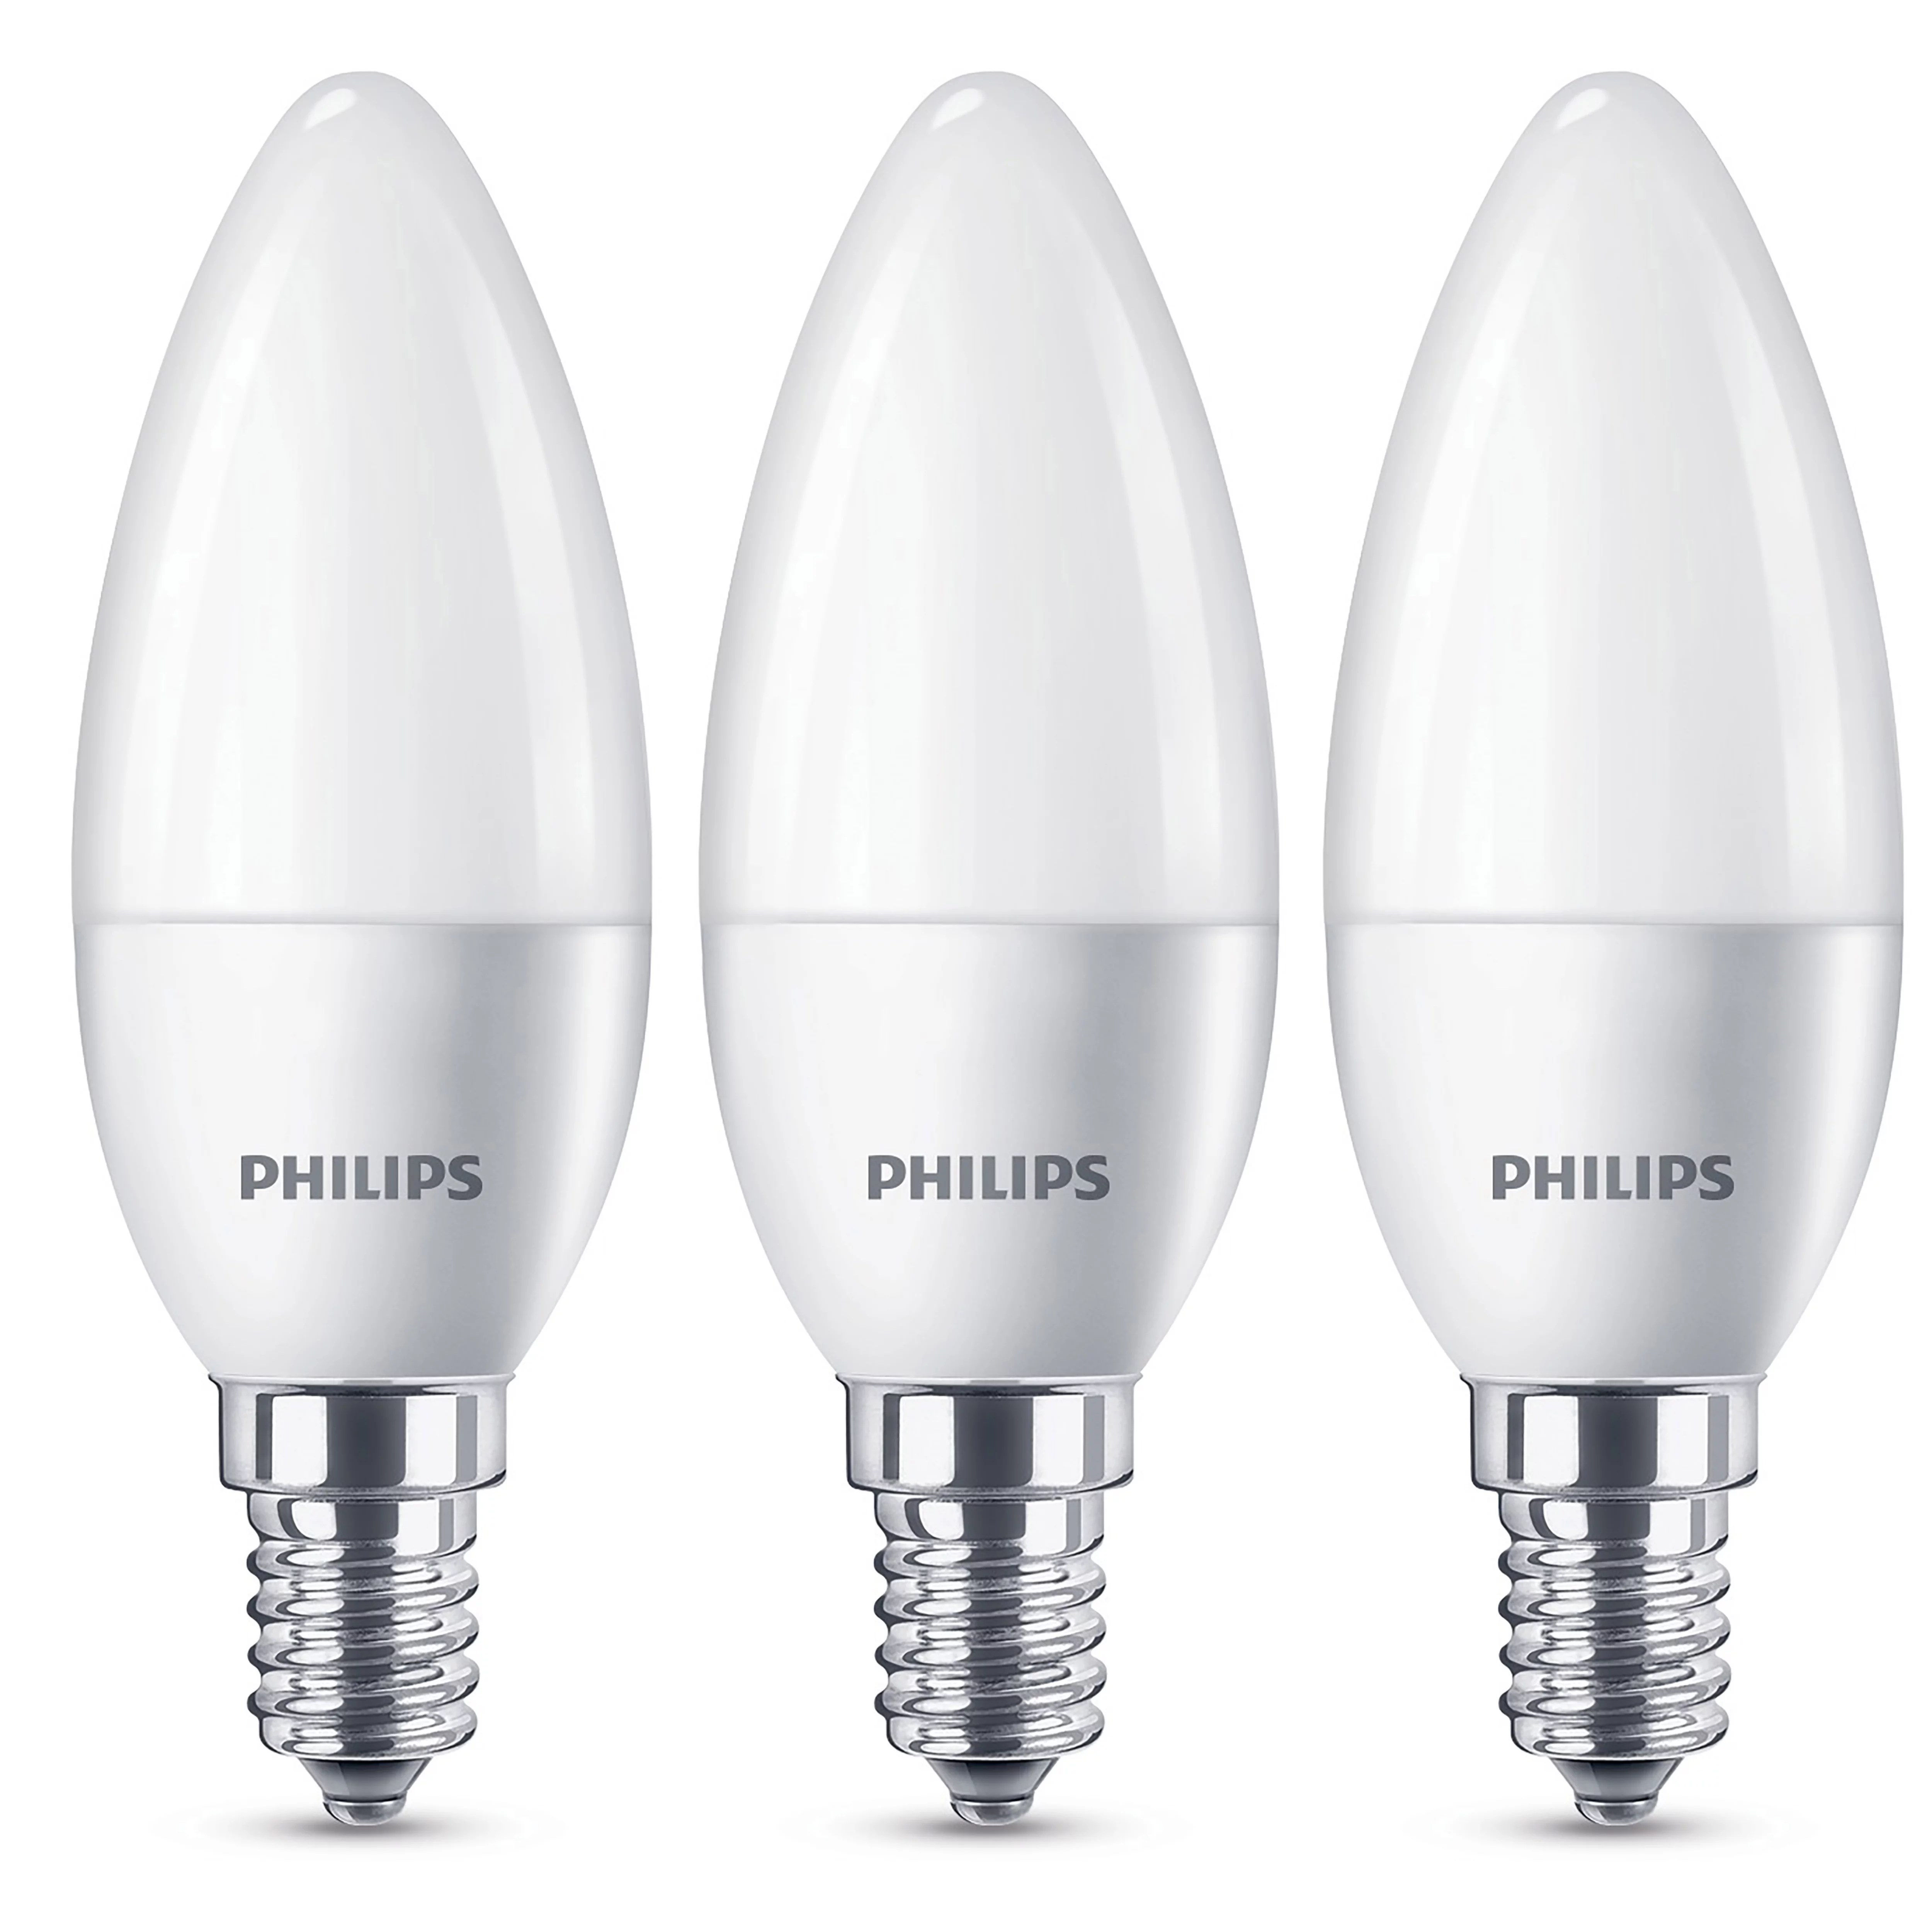 E14 Led Philips E14 470lm Led Candle Light Bulb Pack Of 3 Departments Diy At B Q